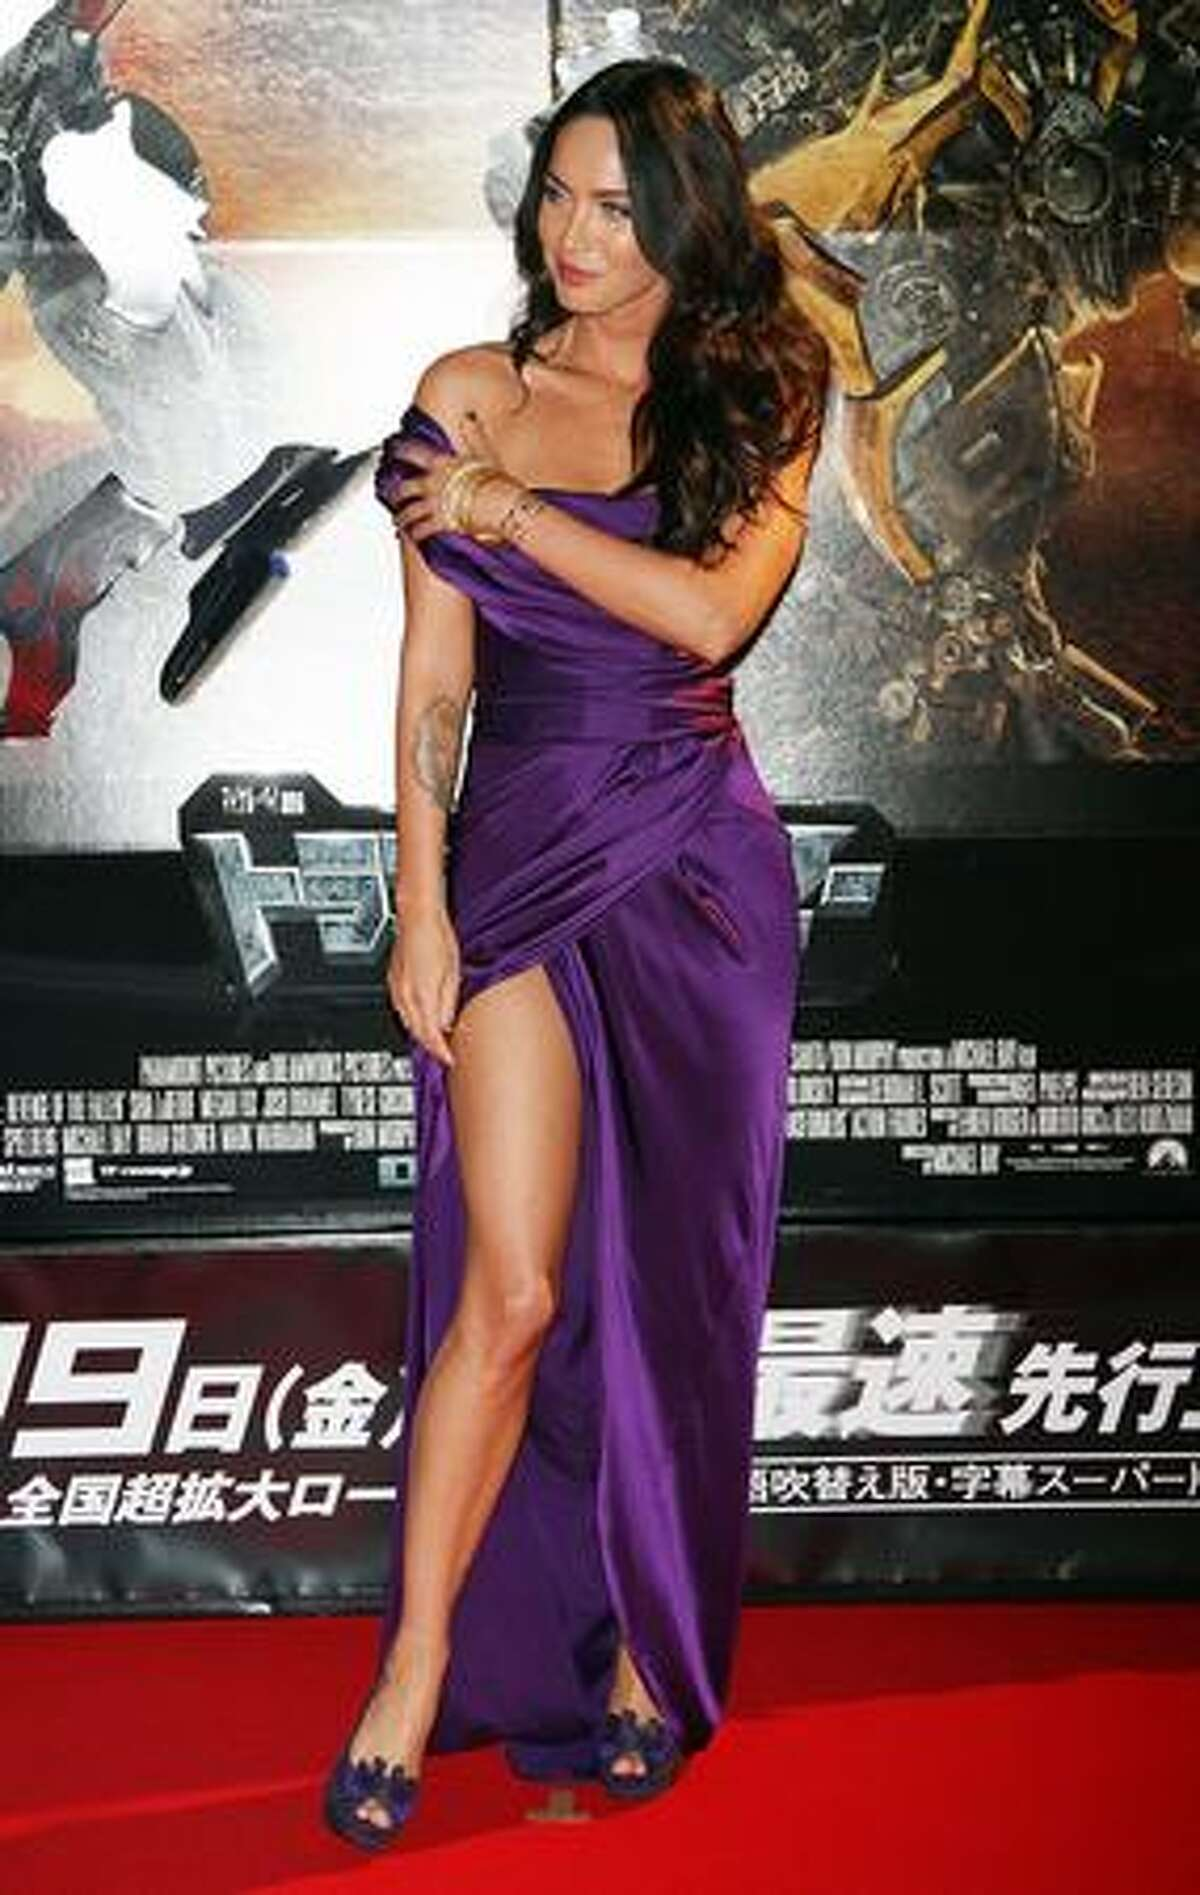 Arriving at the Japanese premiere of the film that night, Fox wore a purple satin Donna Karan gown and a pair of Stuart Weitzman pumps ($365). Adding to her quirky appeal, Fox's shoulder strap appeared eager to meet up with the long split of her gown.